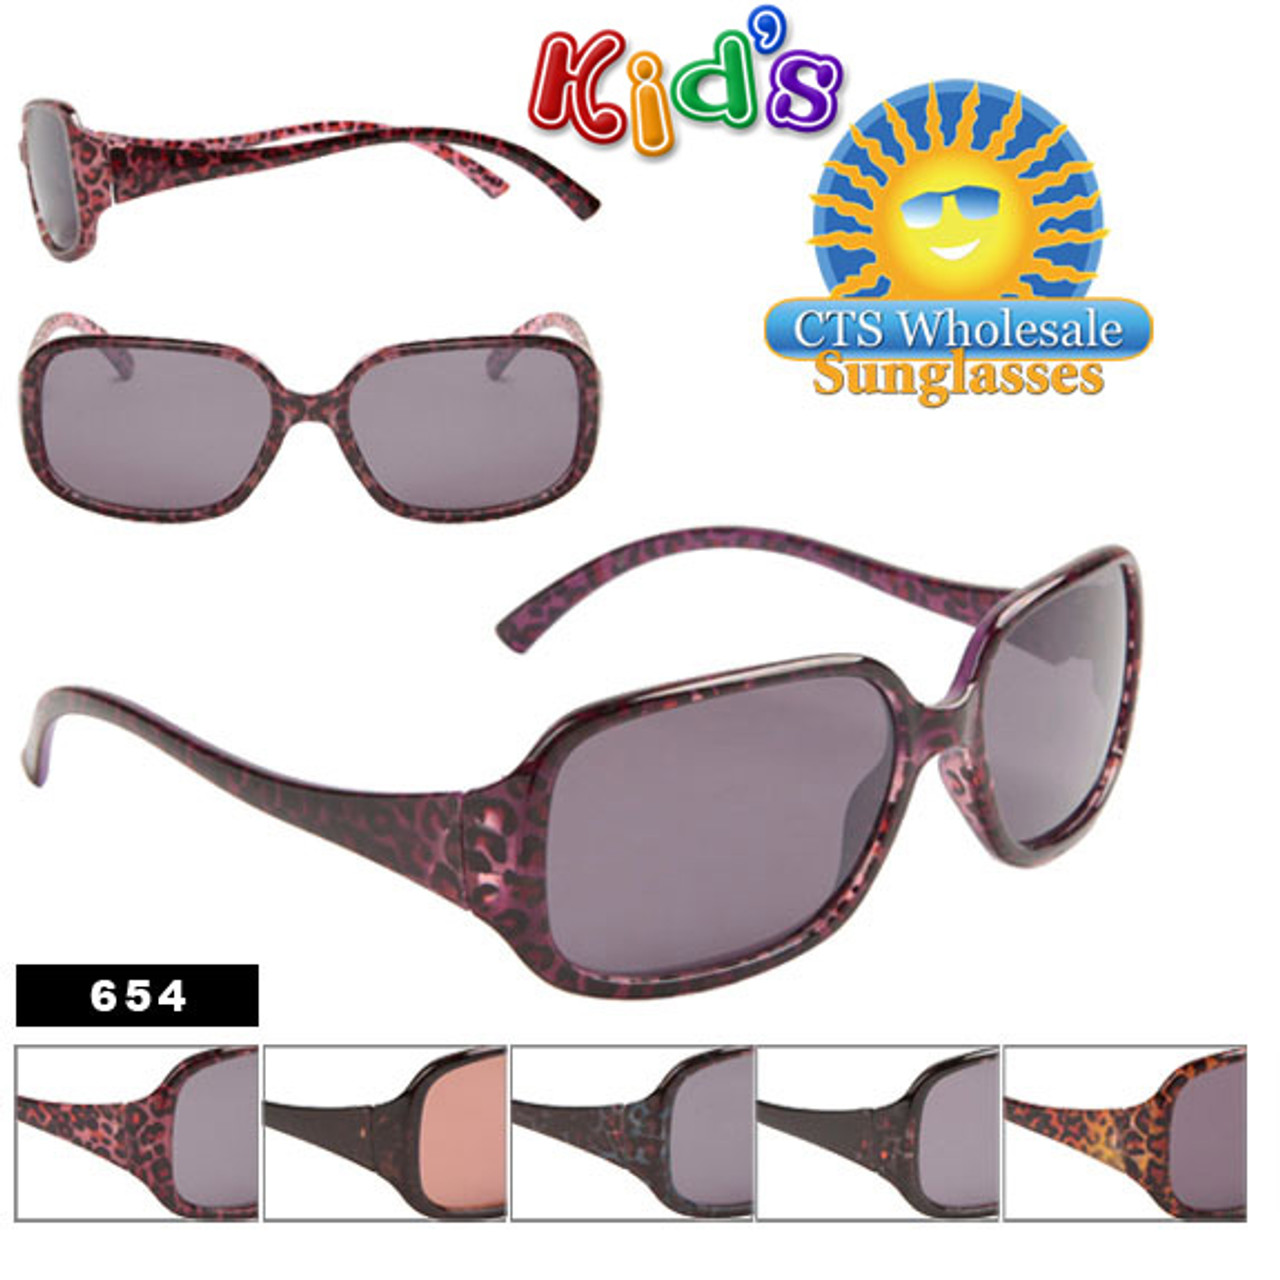 Wholesale Kids Sunglasses!